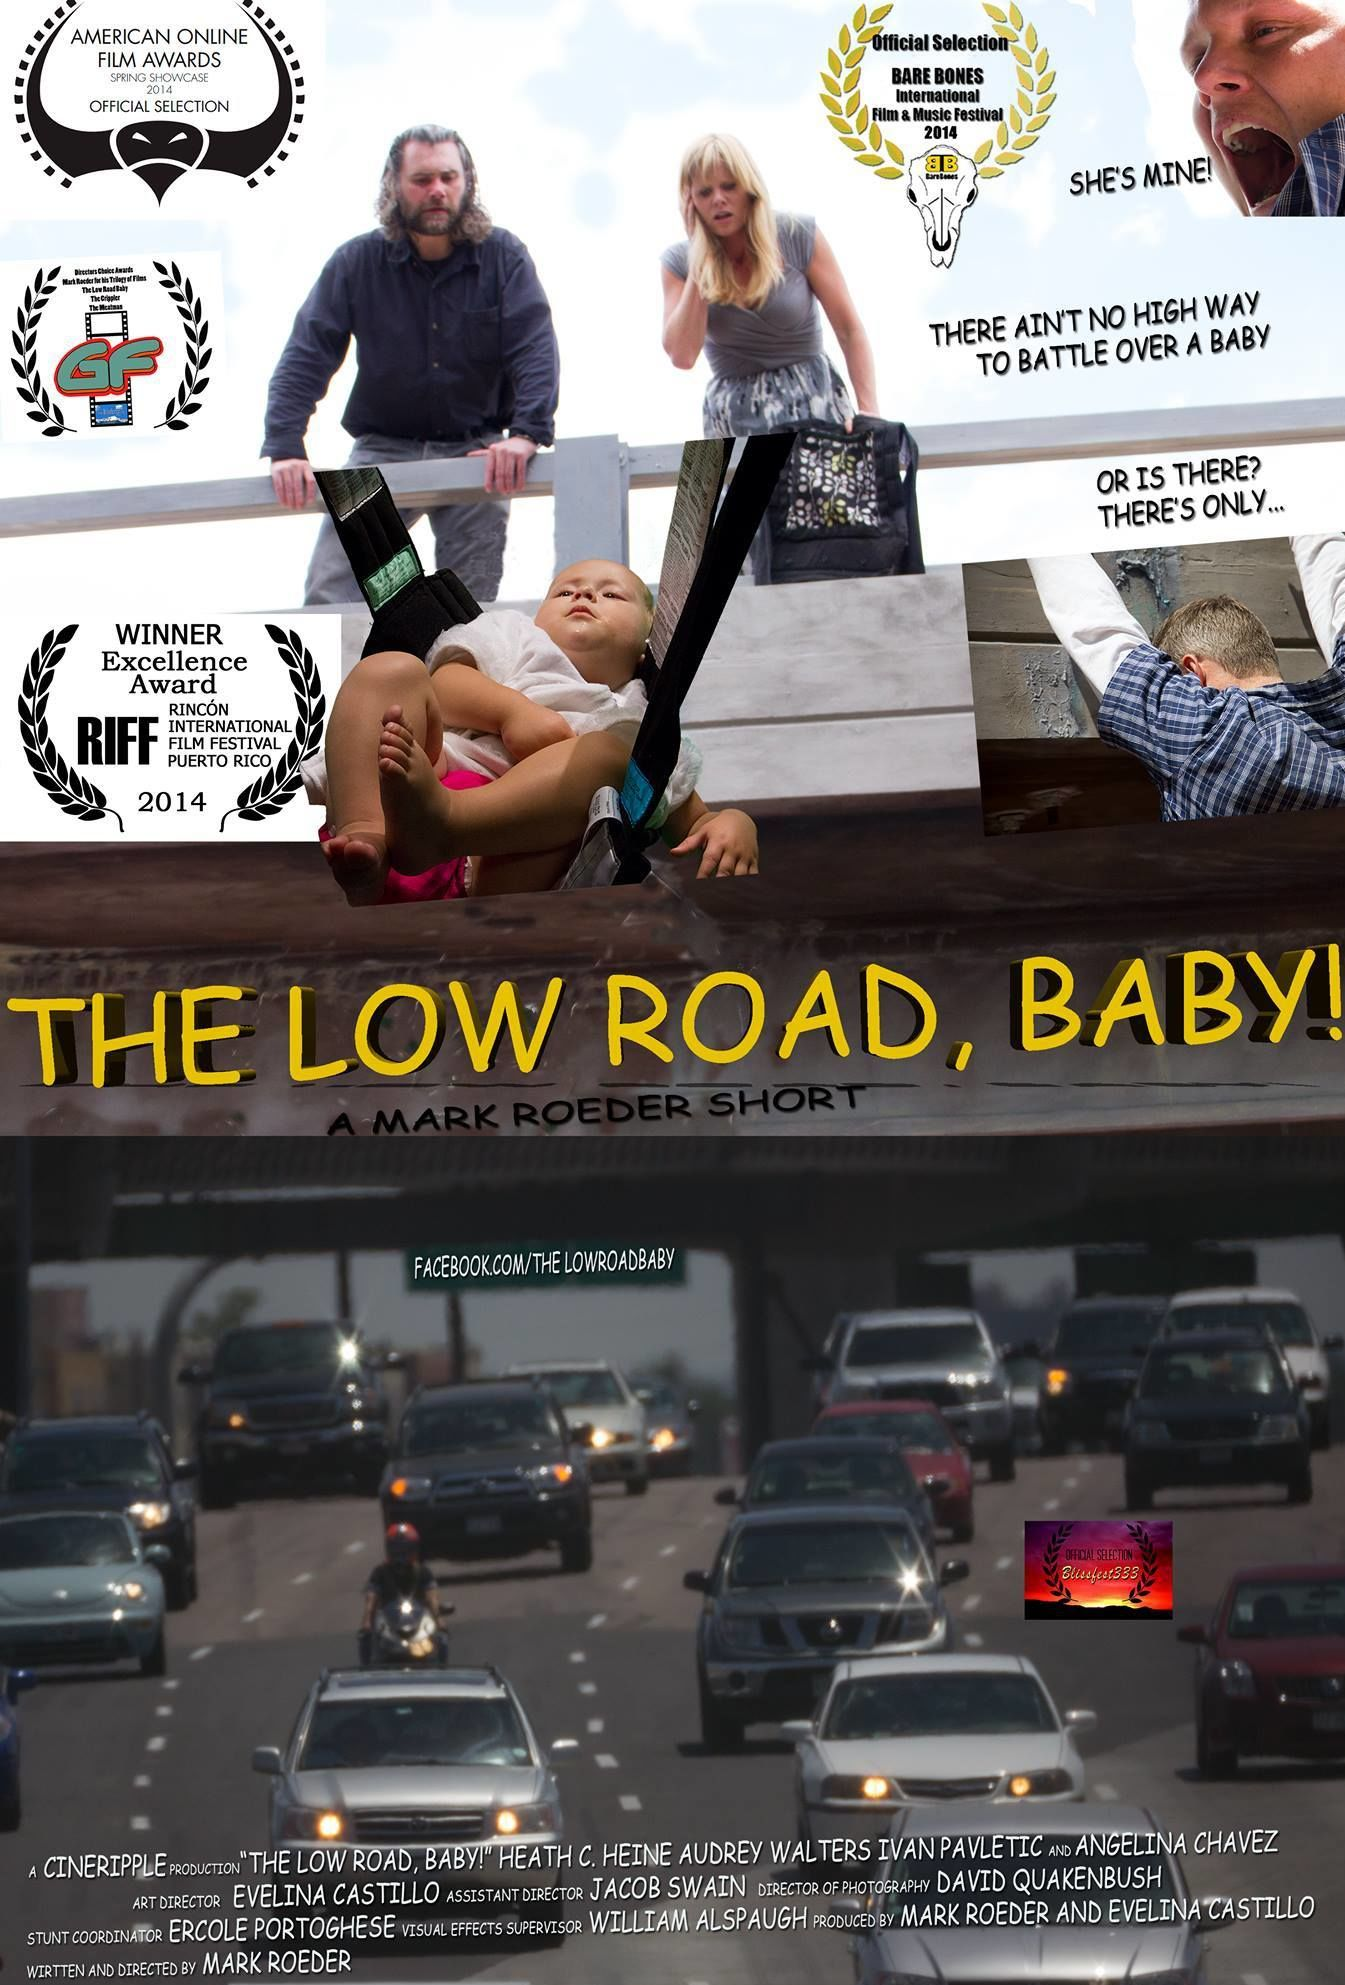 The Low Road, Baby